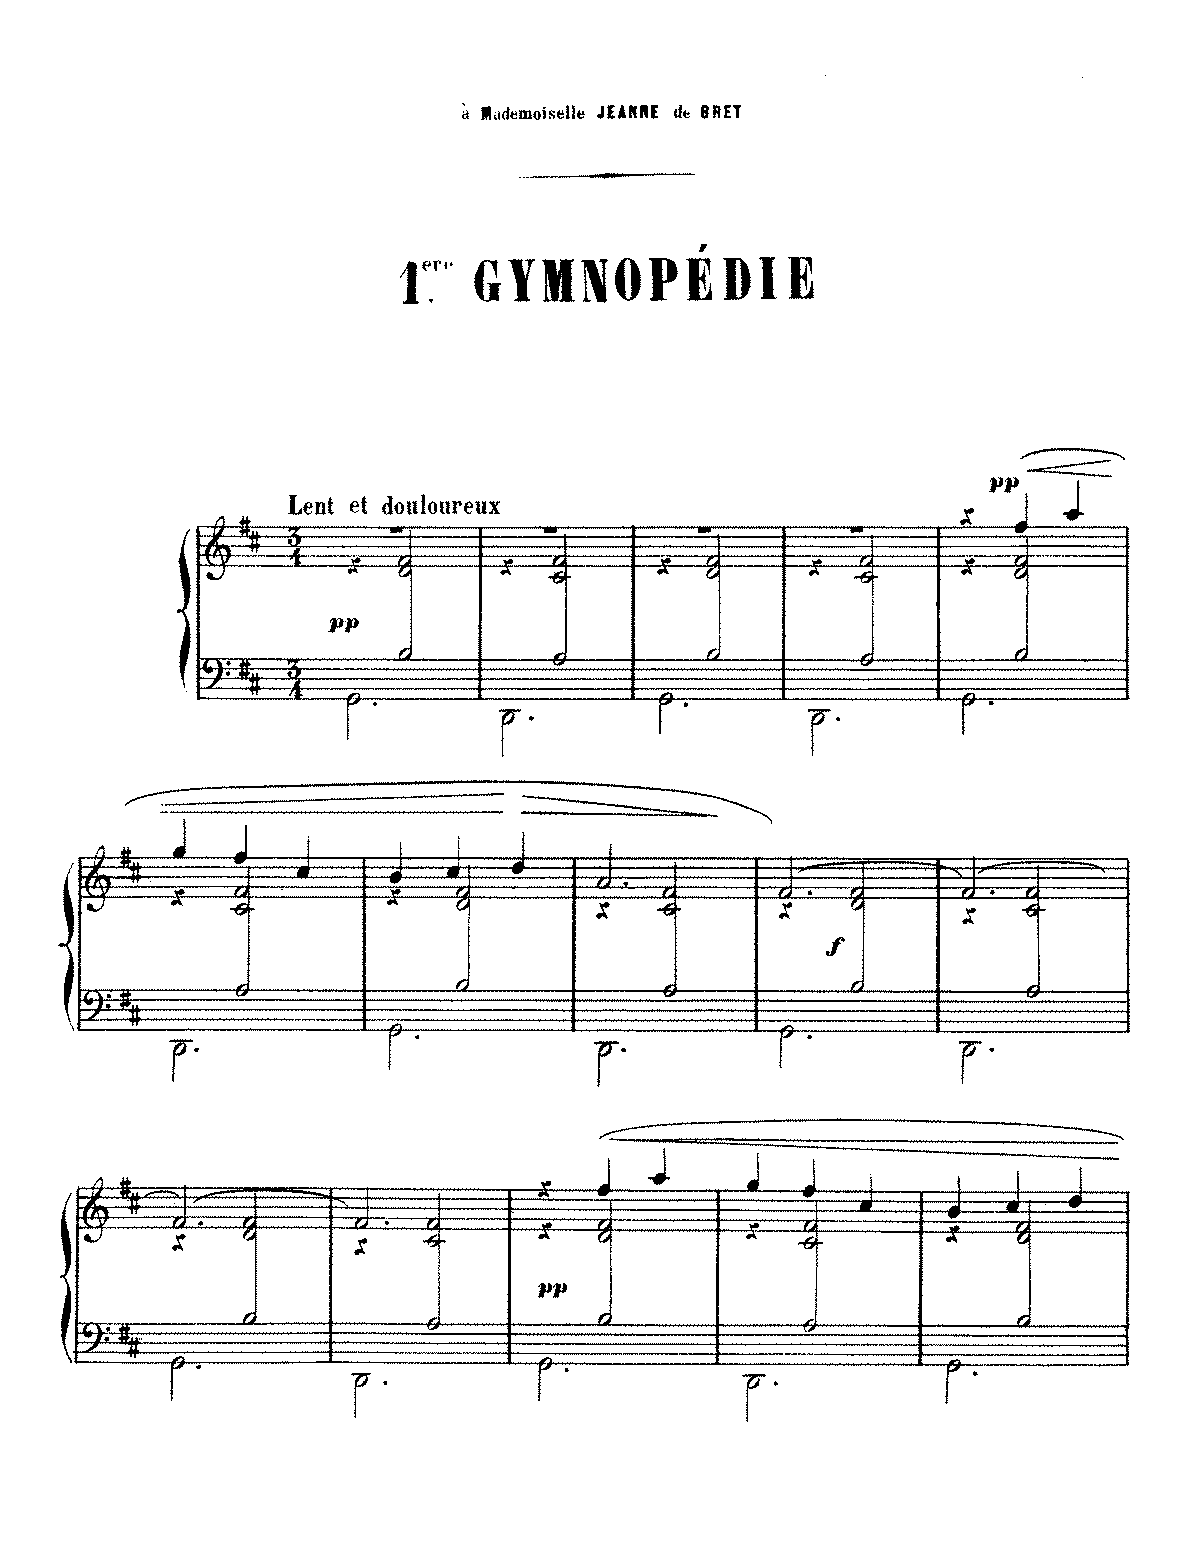 Satie-GymnopediesOrEd.pdf